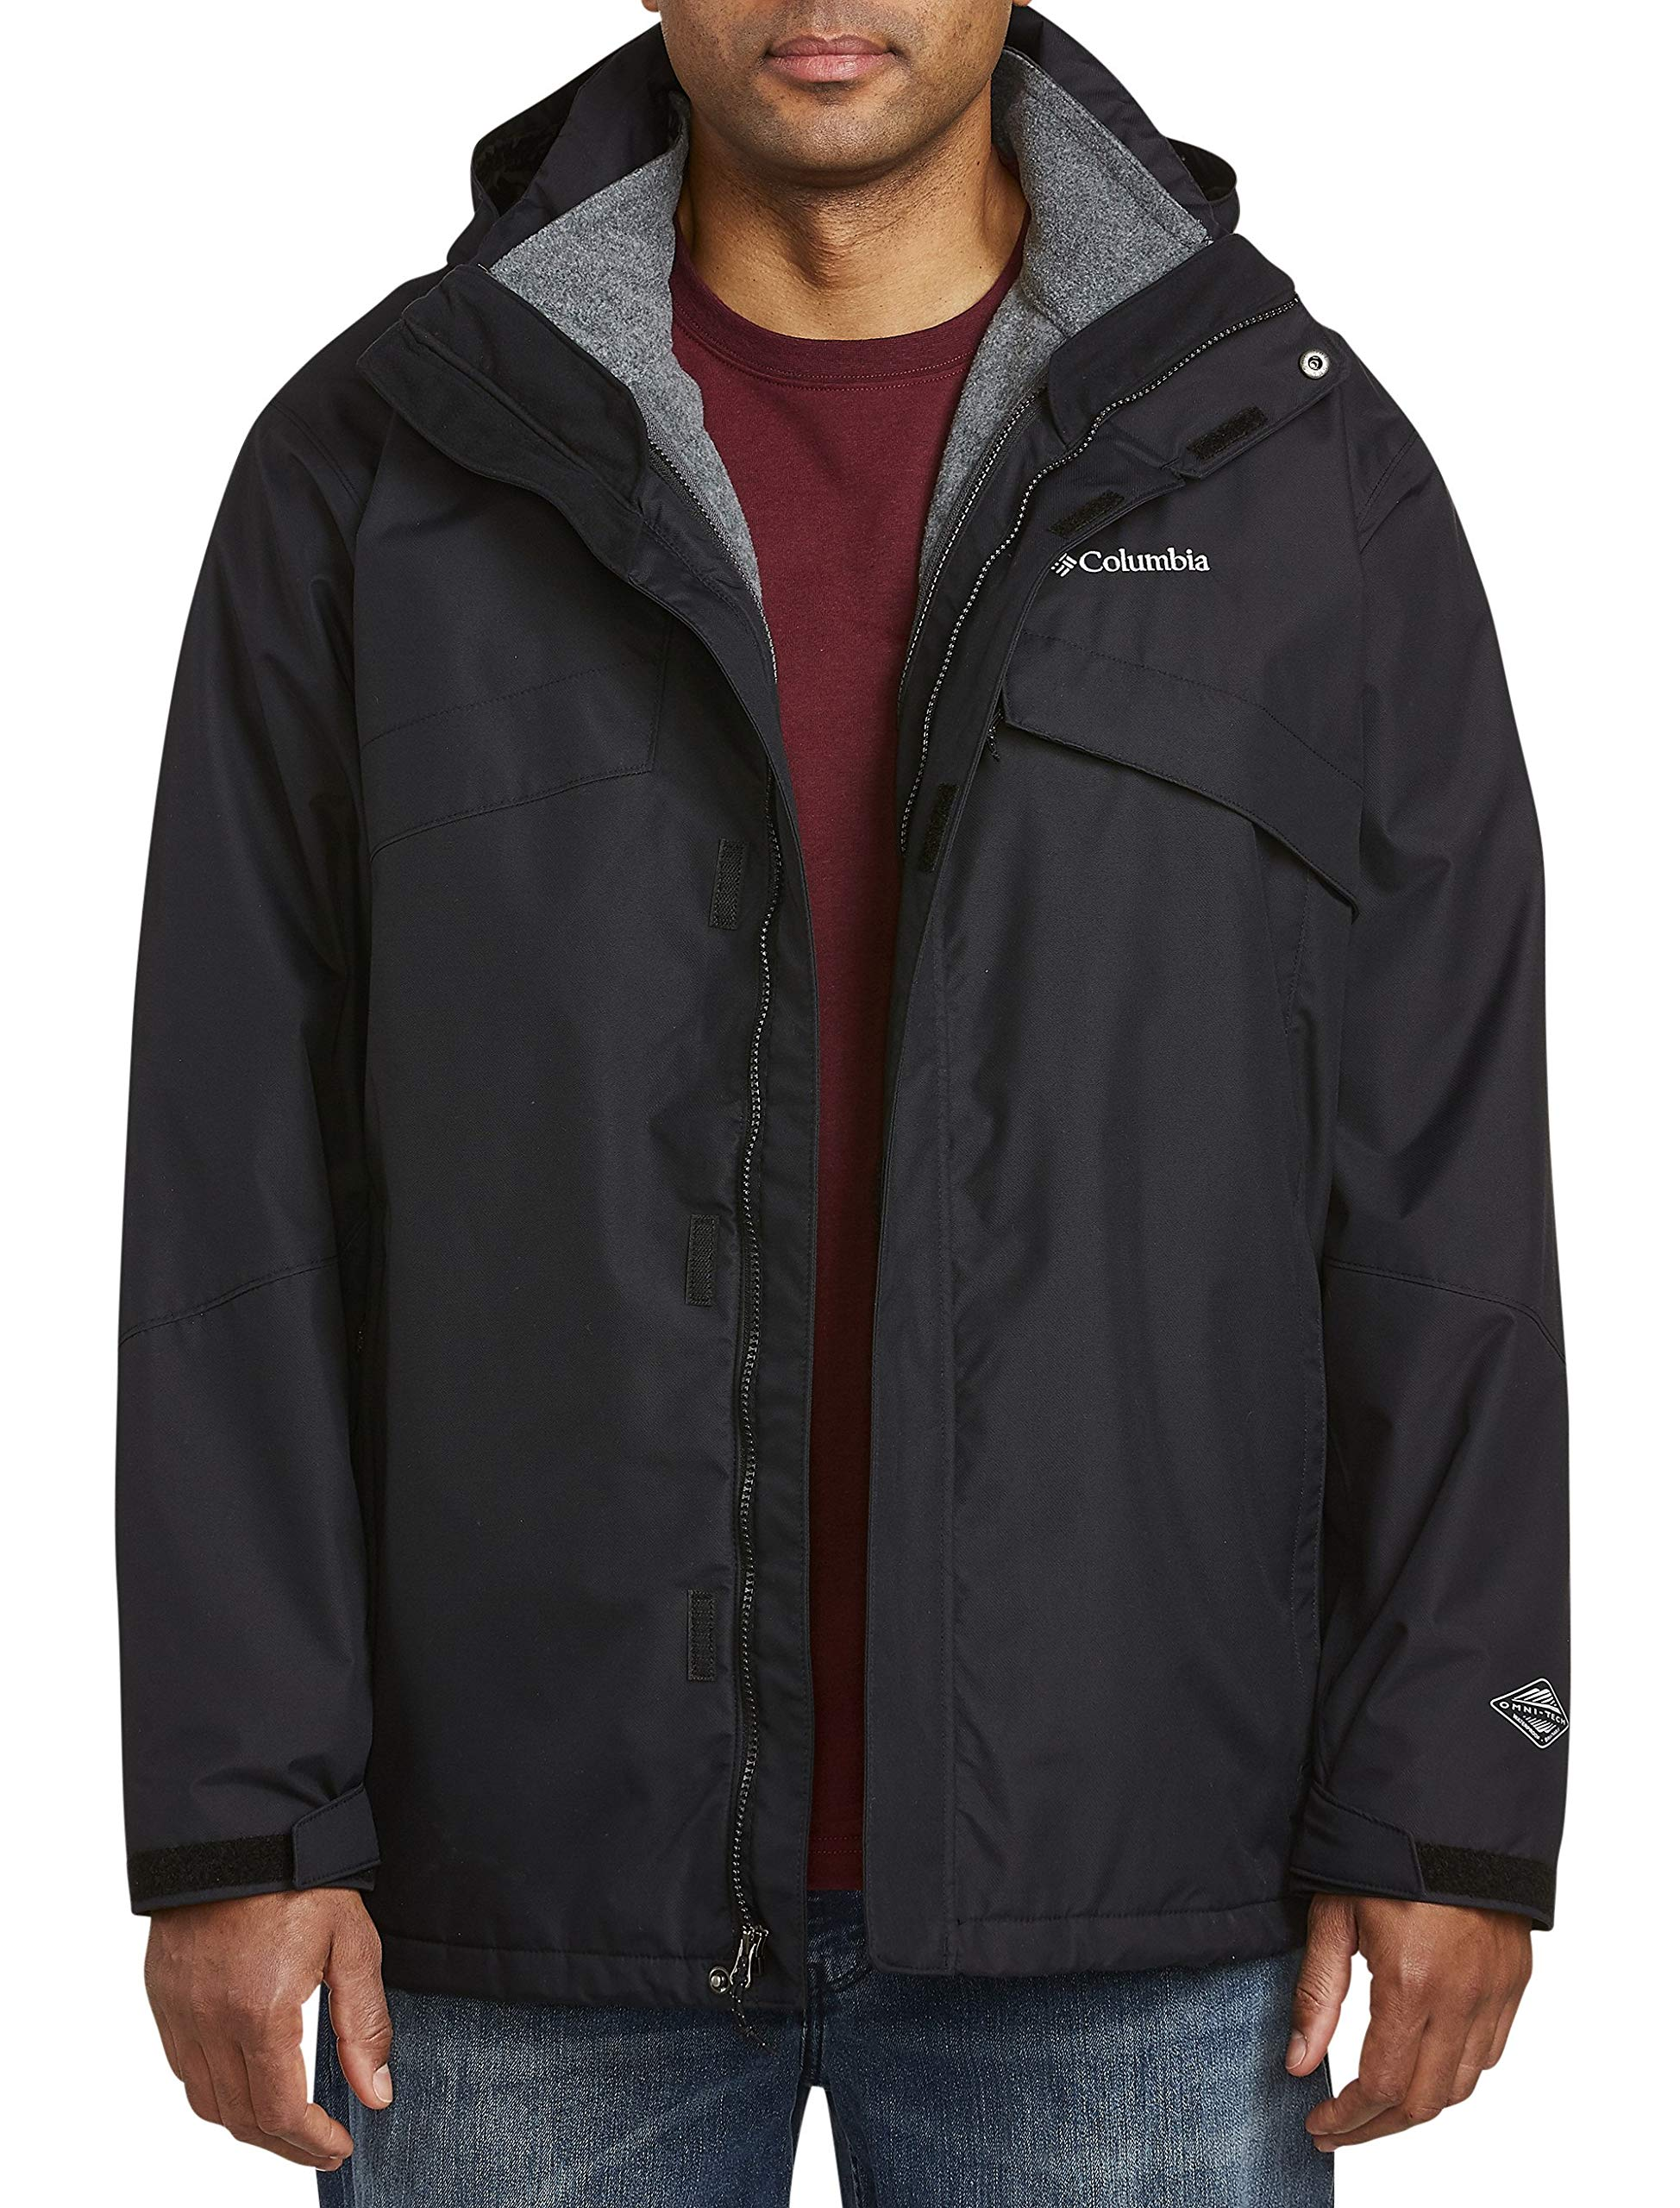 Columbia Big and Tall Bugaboo Interchange Jacket Black by Columbia